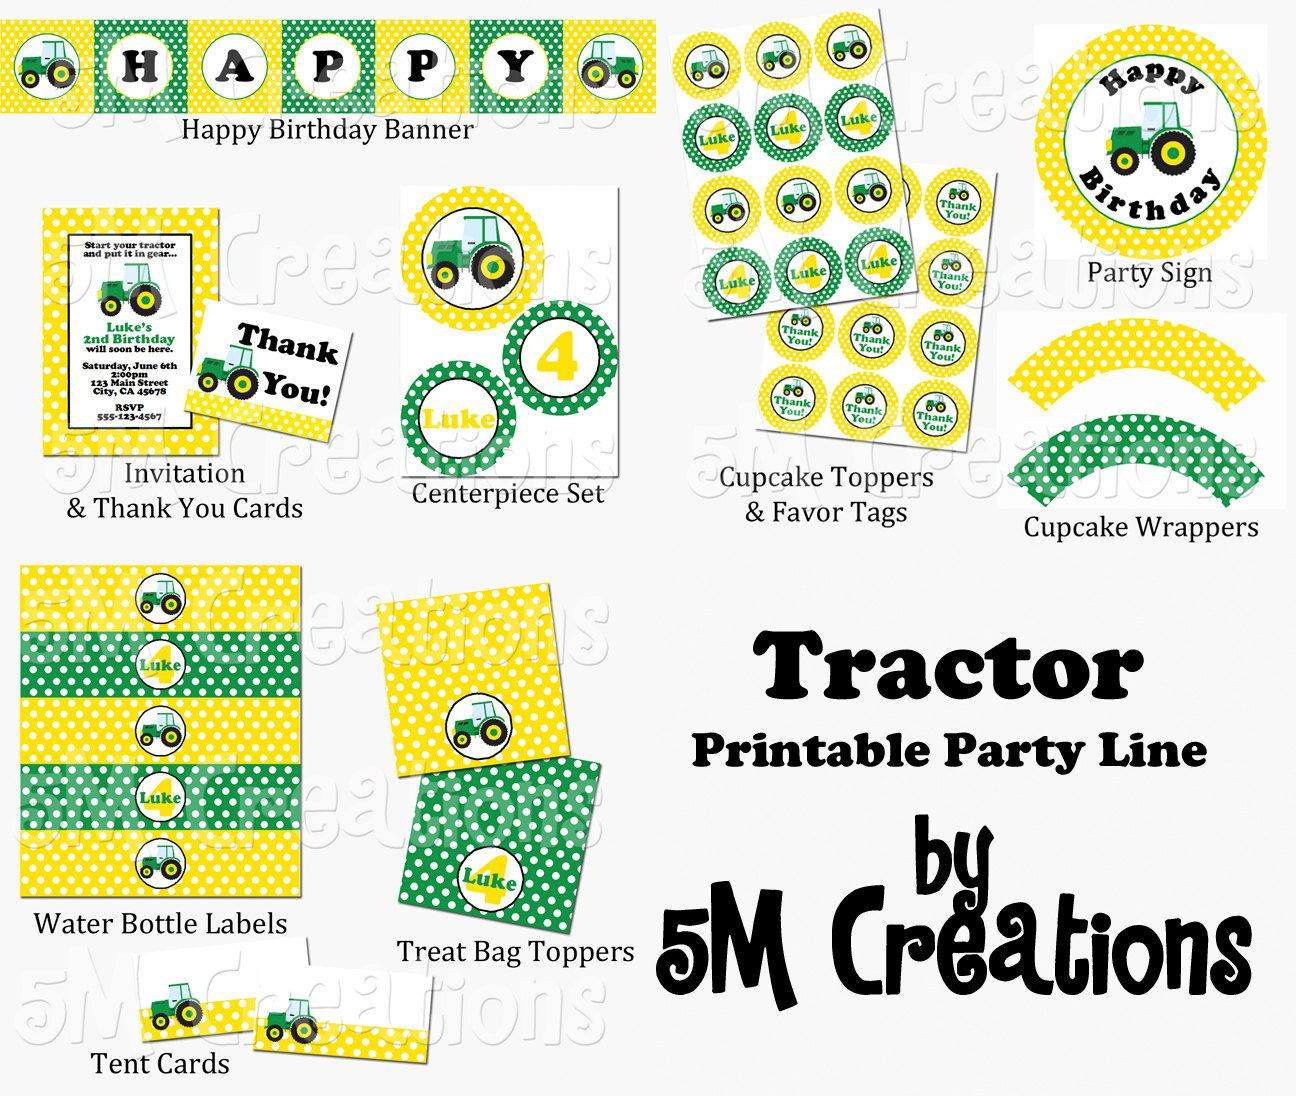 John Deere Party Packages   Tractor Party Package - John Deere - Free Printable John Deere Food Labels